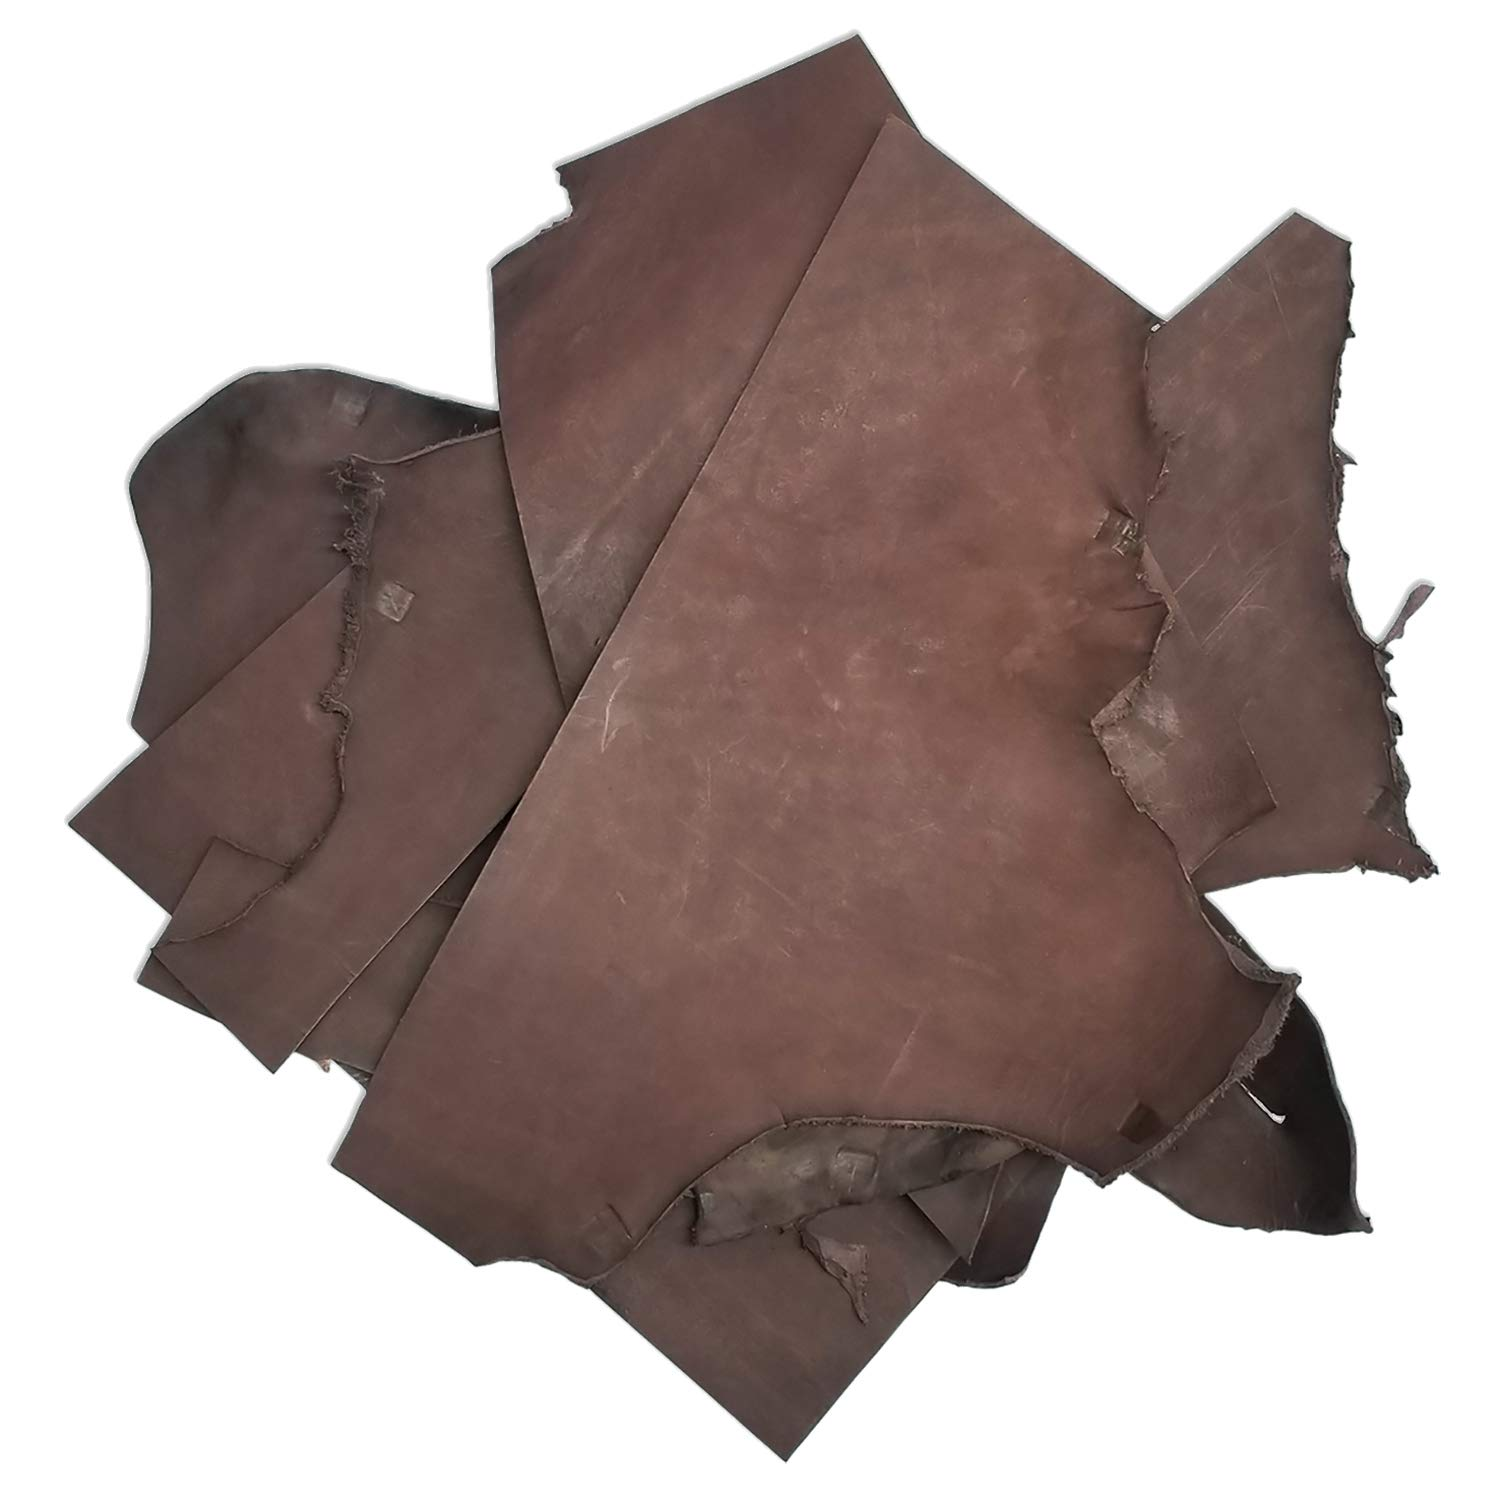 5 Pounds of, Large, Usable Holster & Sheath Leather Scraps, Assorted Sizes, Rich Havanna Brown Color, Molds and Tools Well, Great For Leather Crafting, Holster and Sheath Making, USA Hide